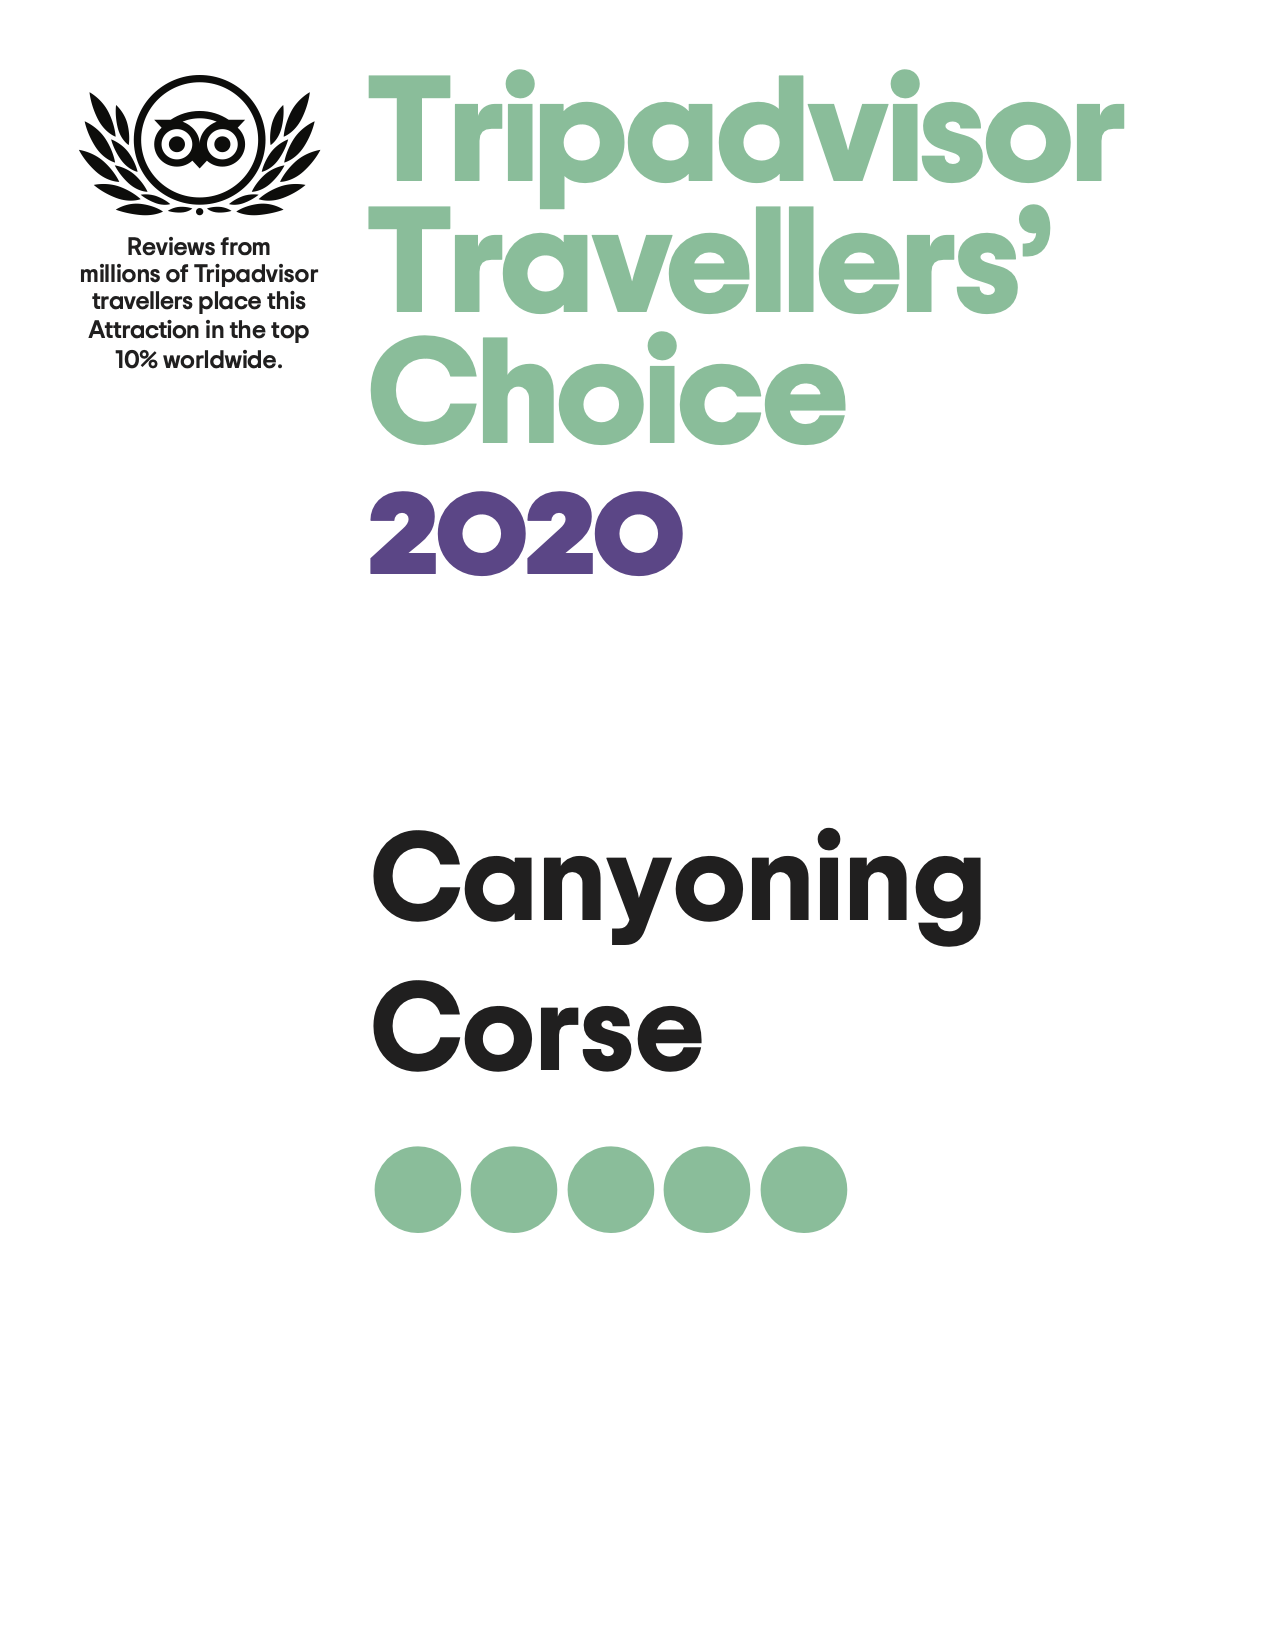 https://www.tripadvisor.fr/Attraction_Review-g187140-d4800834-Reviews-Canyoning_Corse-Ajaccio_Communaute_d_Agglomeration_du_Pays_Ajaccien_Corse_du_Sud_.html